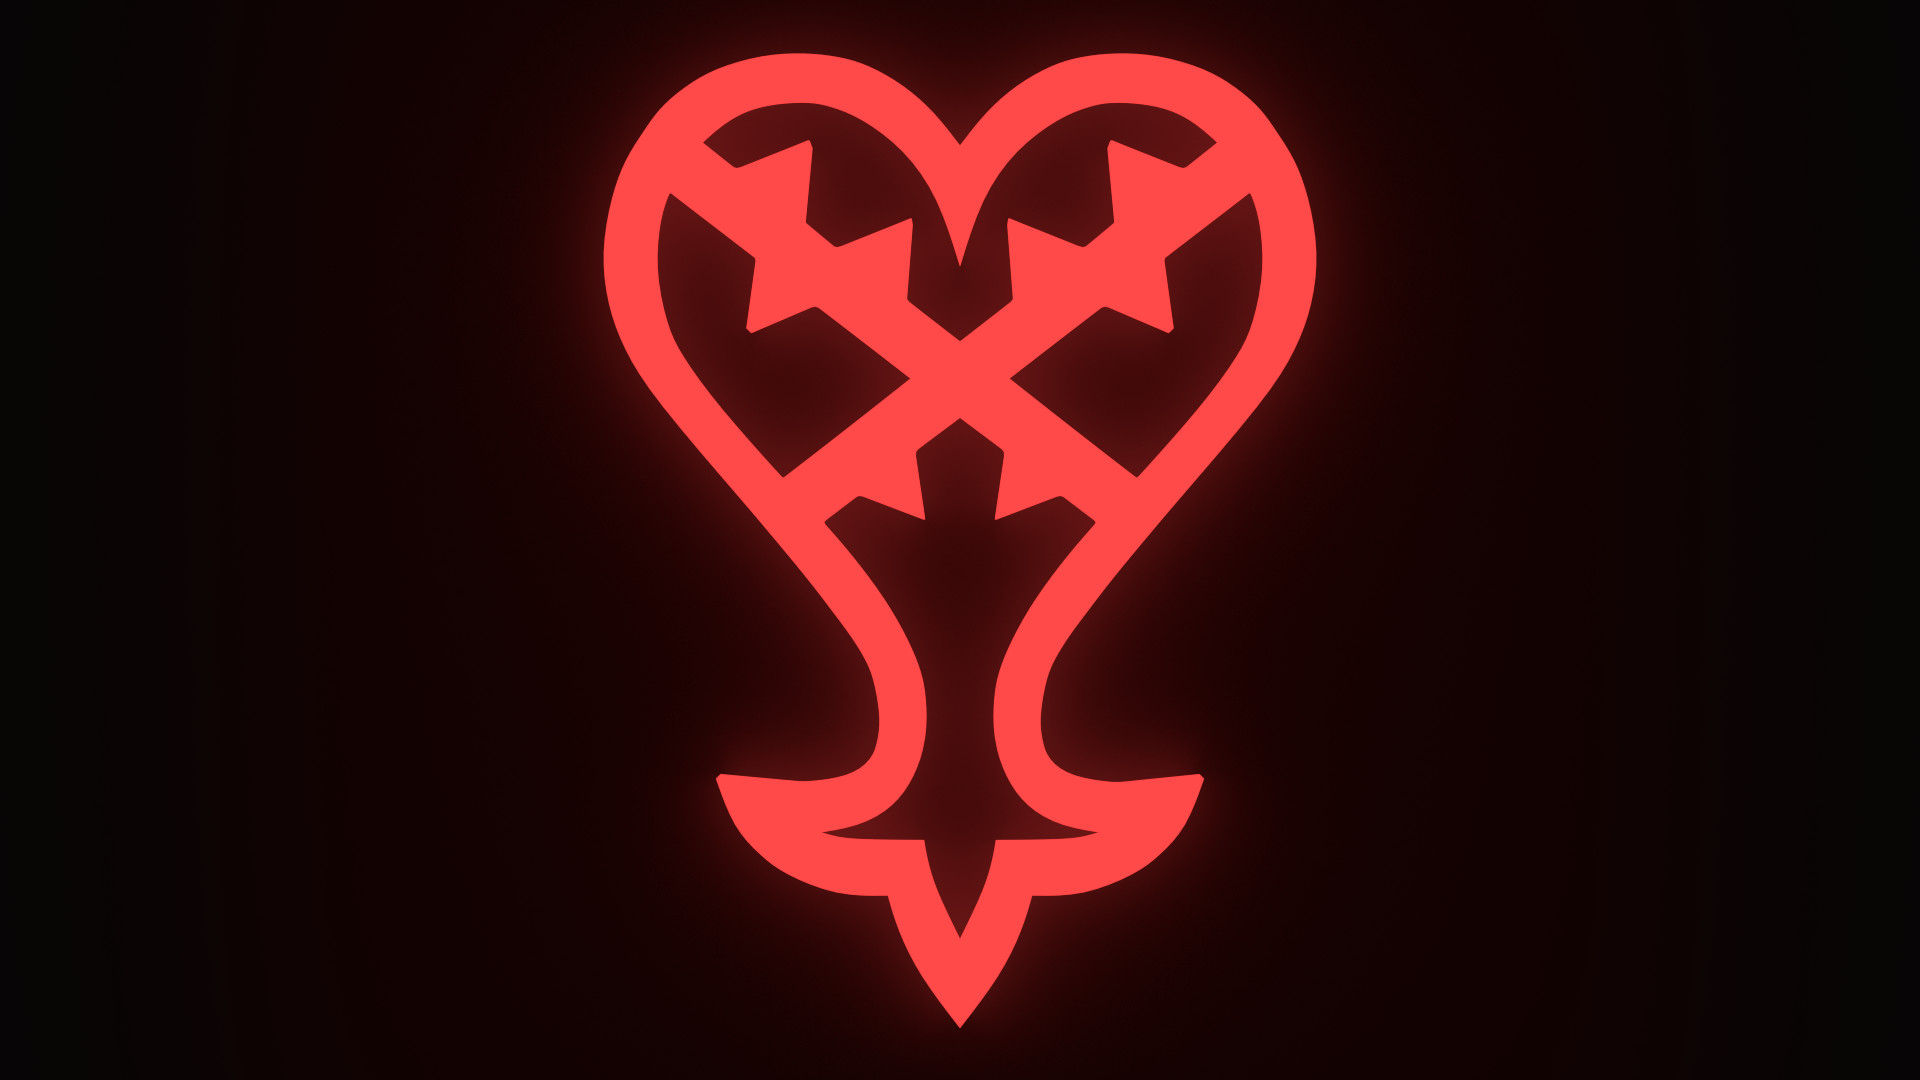 1920x1080 Kingdom Hearts - Heartless Wallpaper by abluescarab Kingdom Hearts - Heartless  Wallpaper by abluescarab